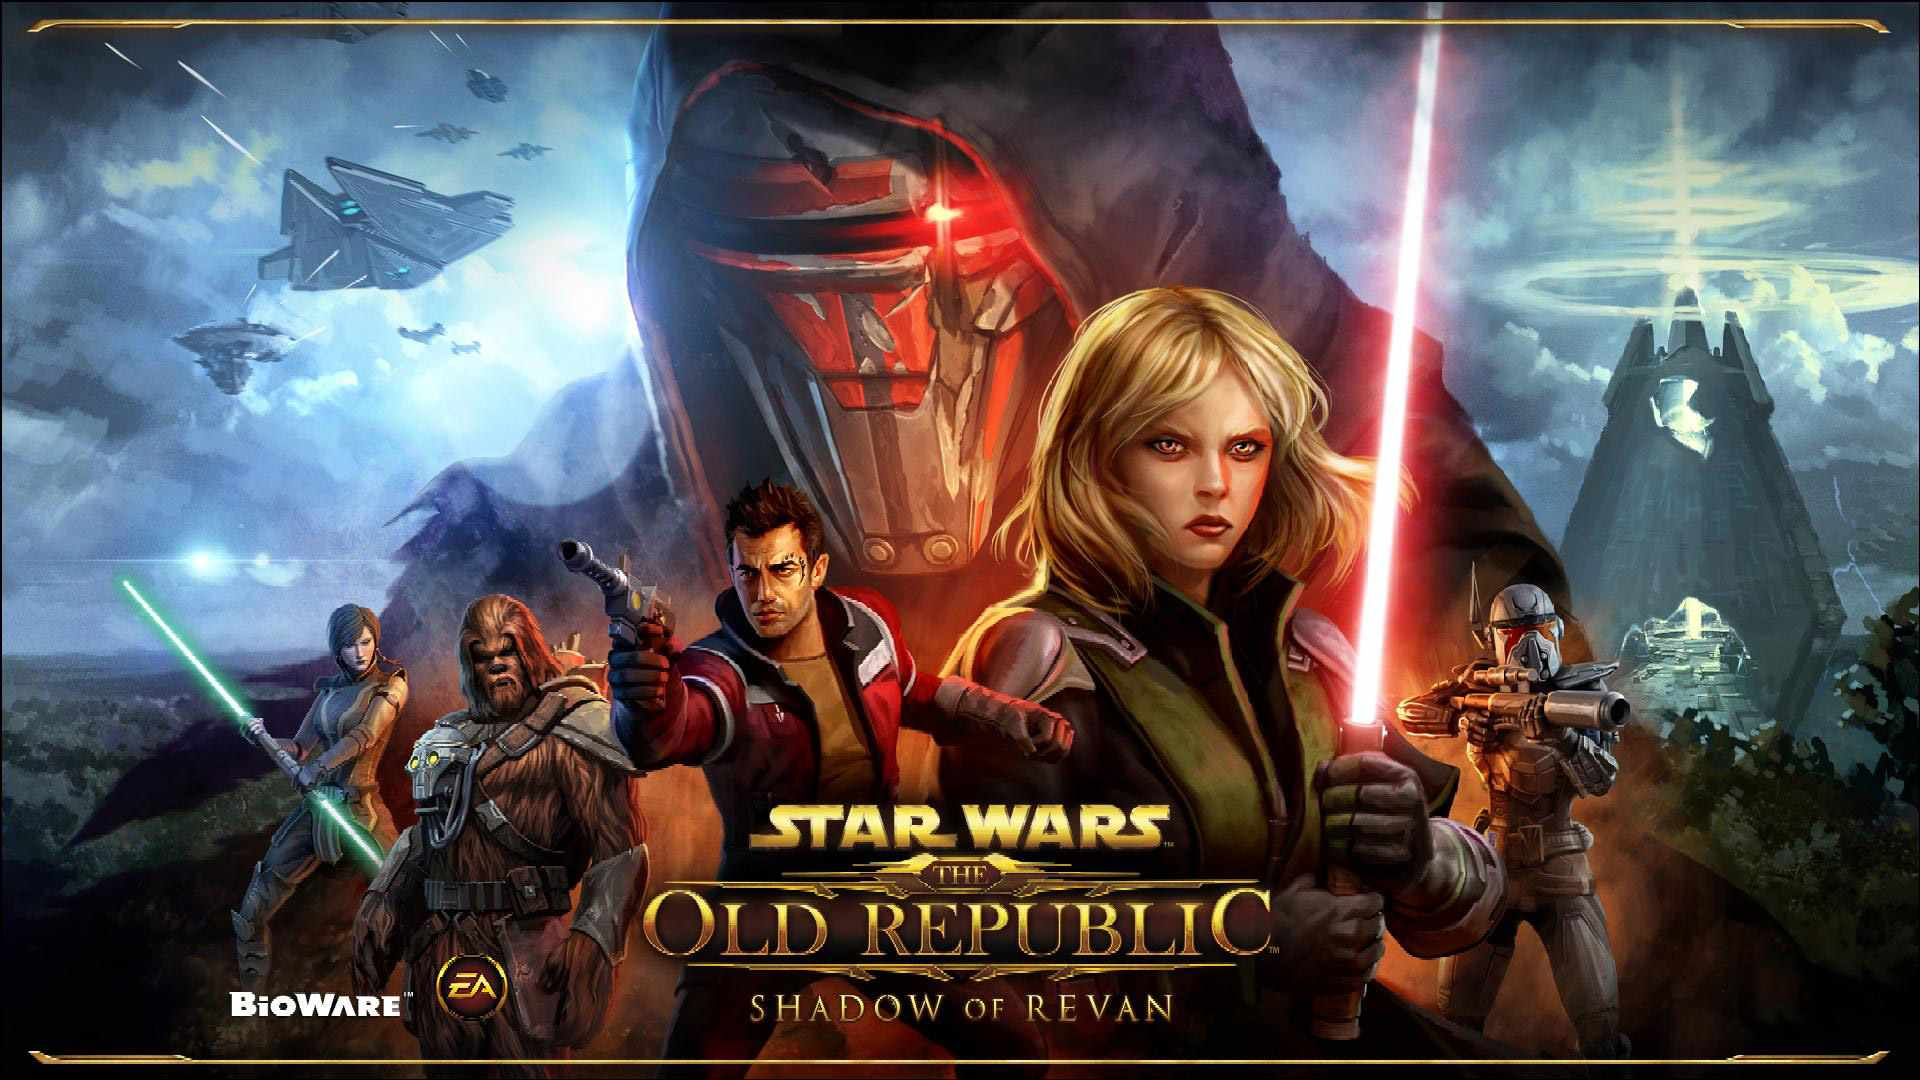 Image for Star Wars The Old Republic HD Wallpaper 1920x1080